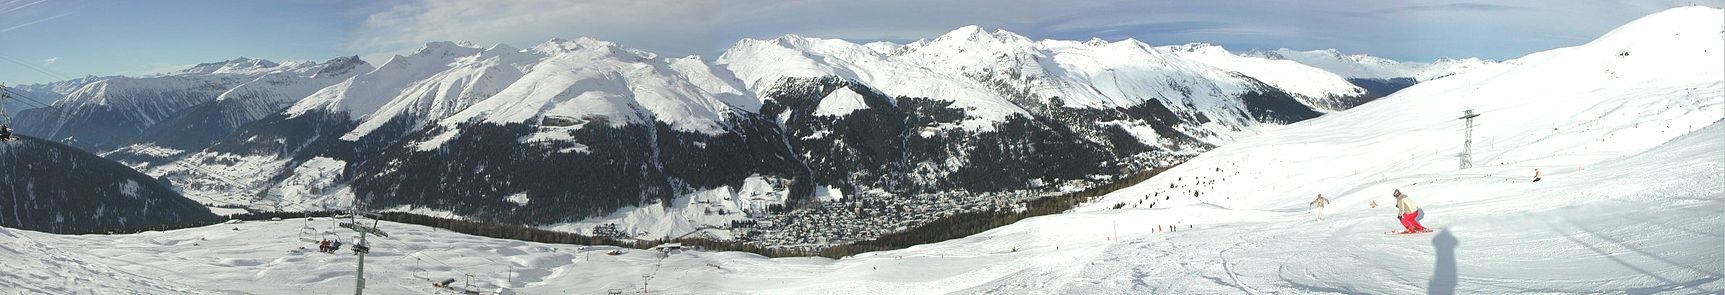 Panorama over Davos set fra Jakobshorn